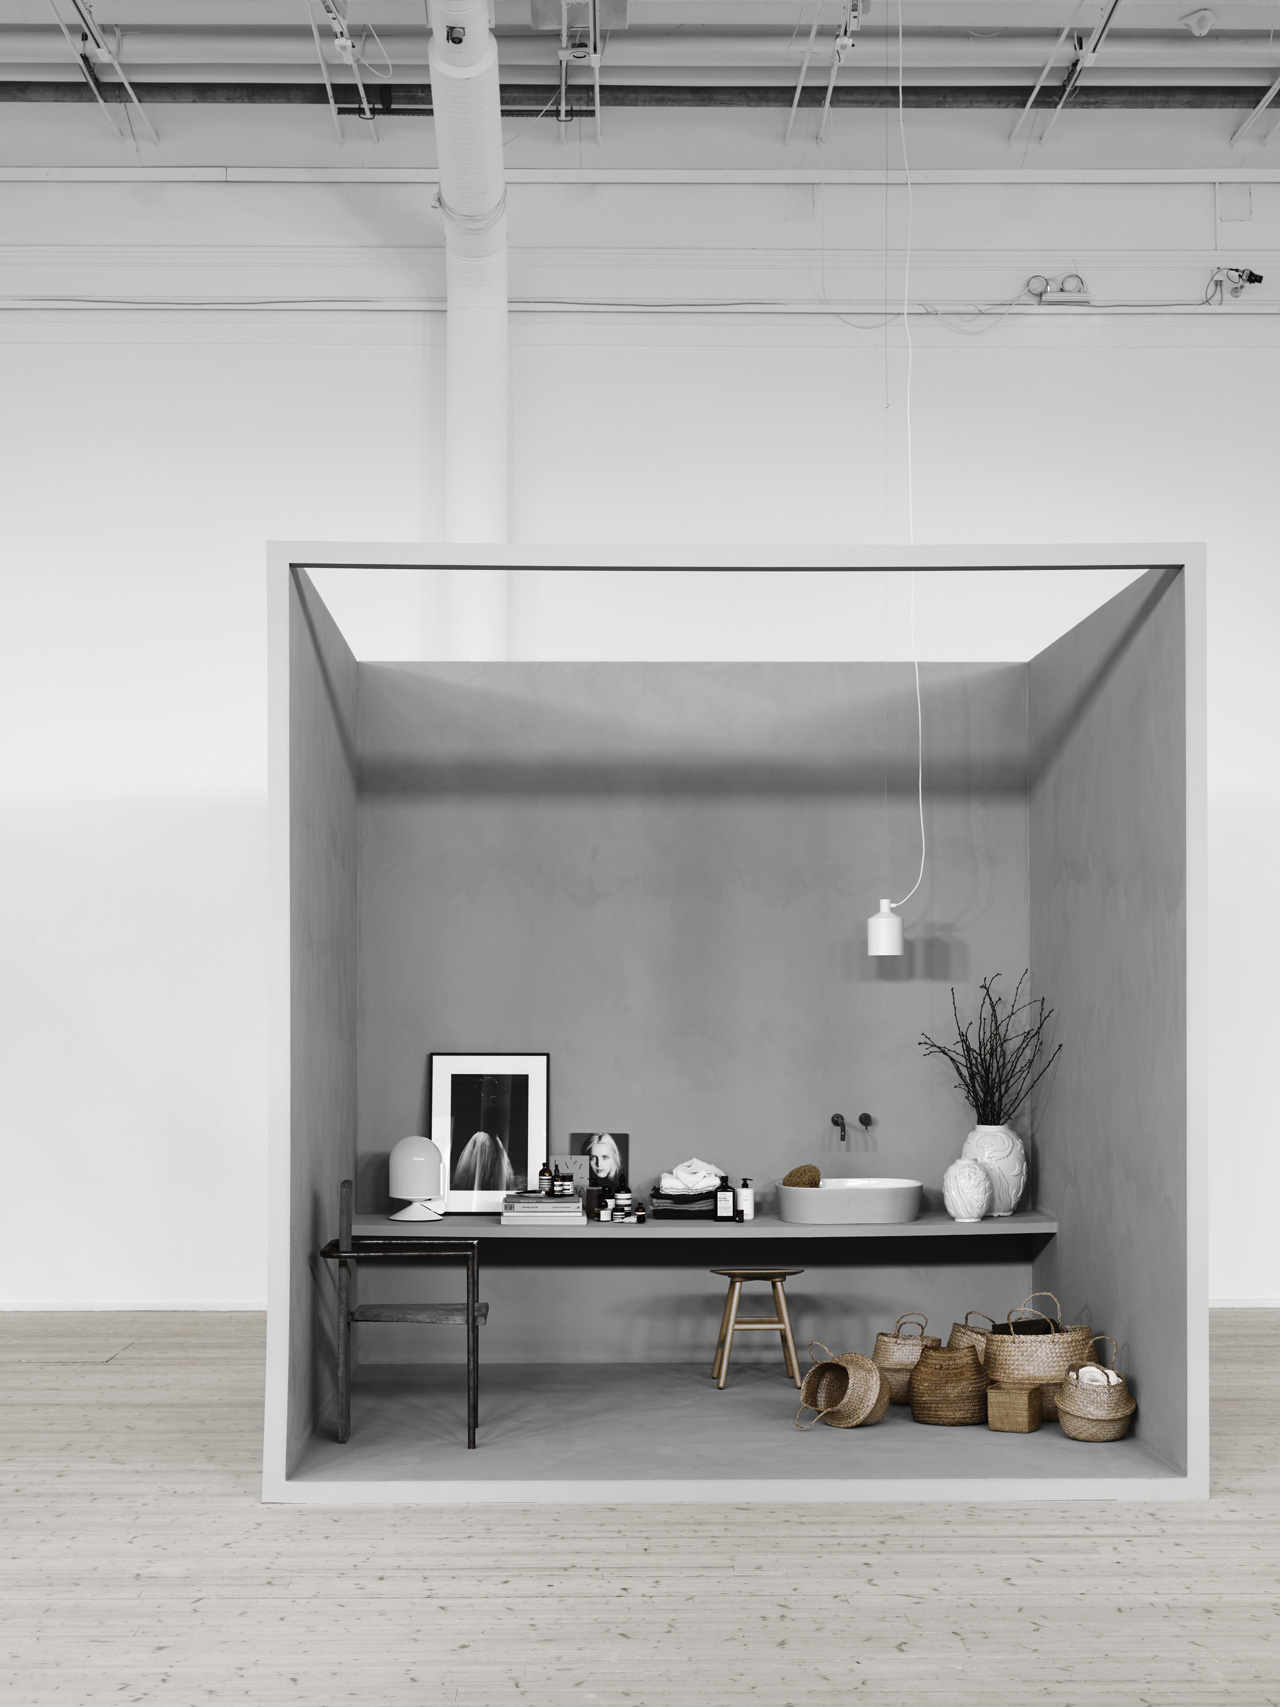 Residence Magazine awarded NOTE DESIGN STUDIO as the Designer of the Year In 2015 and during Stockholm Design Week 2016 an exhibition was presented at the architecture museum ArkDes in Stockholm, curated by Lotta Agaton, one of Sweden's leading stylists.